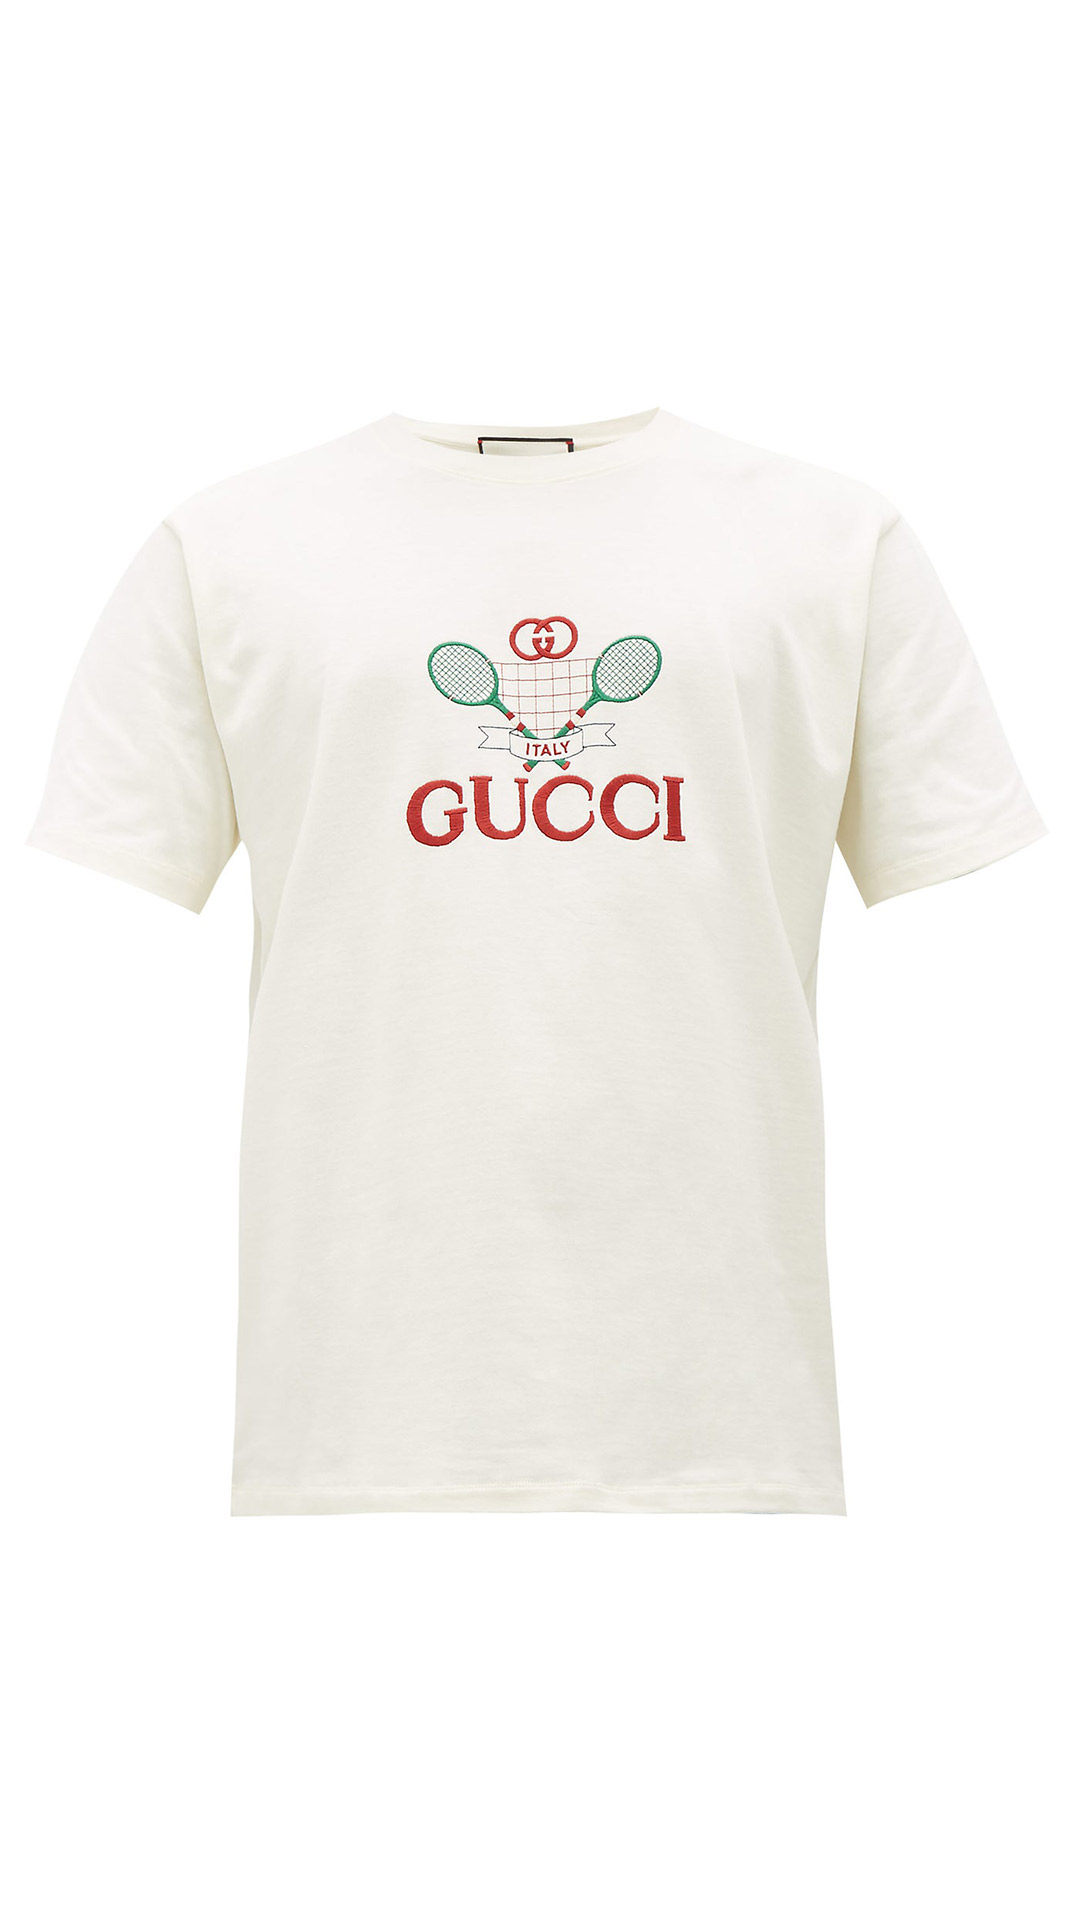 GUCCIEmbroidered T-shirt